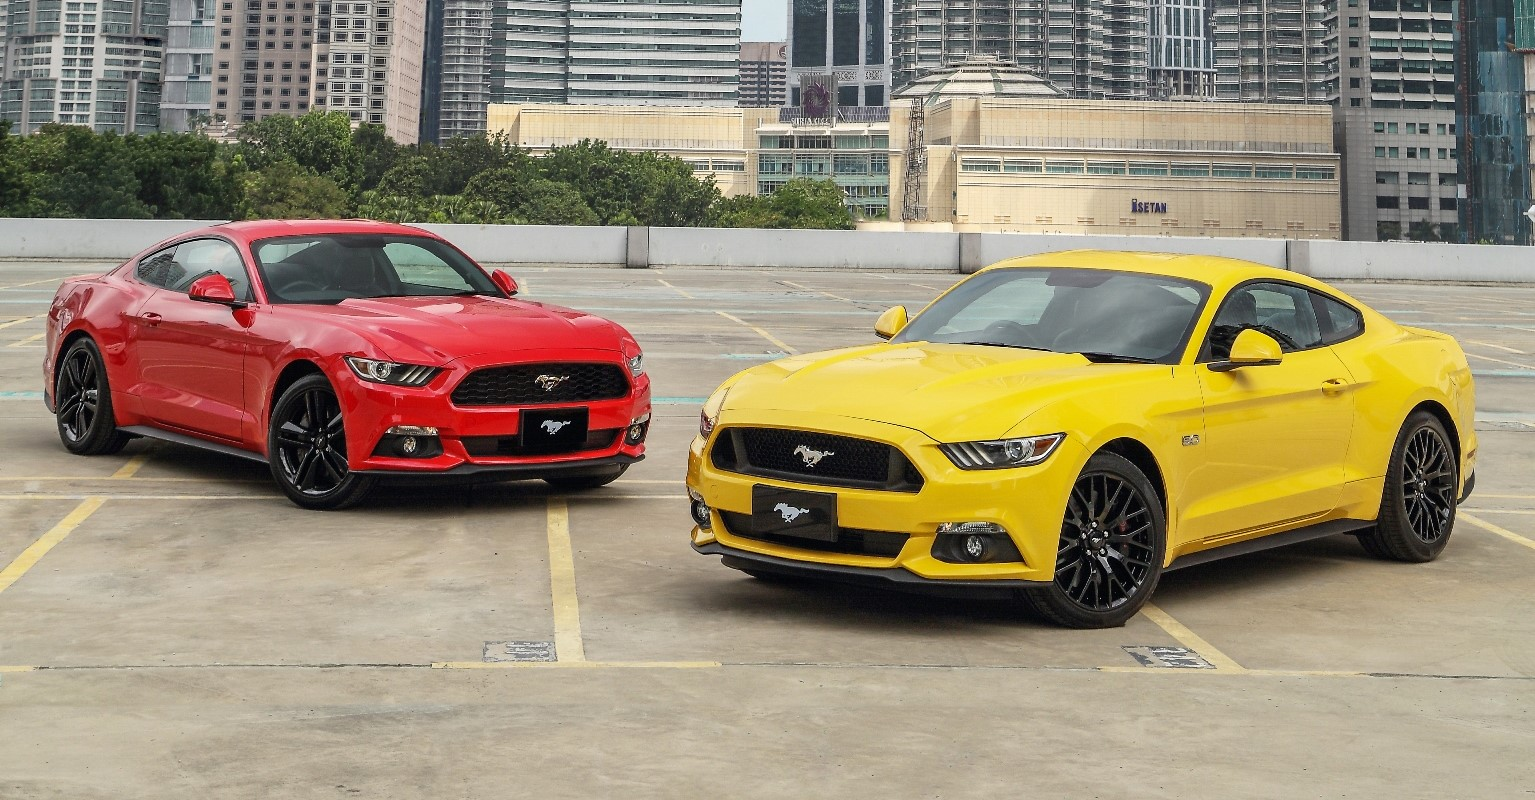 EXPORTS MAKES FORD MUSTANG BEST-SELLING SPORTS CAR FOR 2016 ...